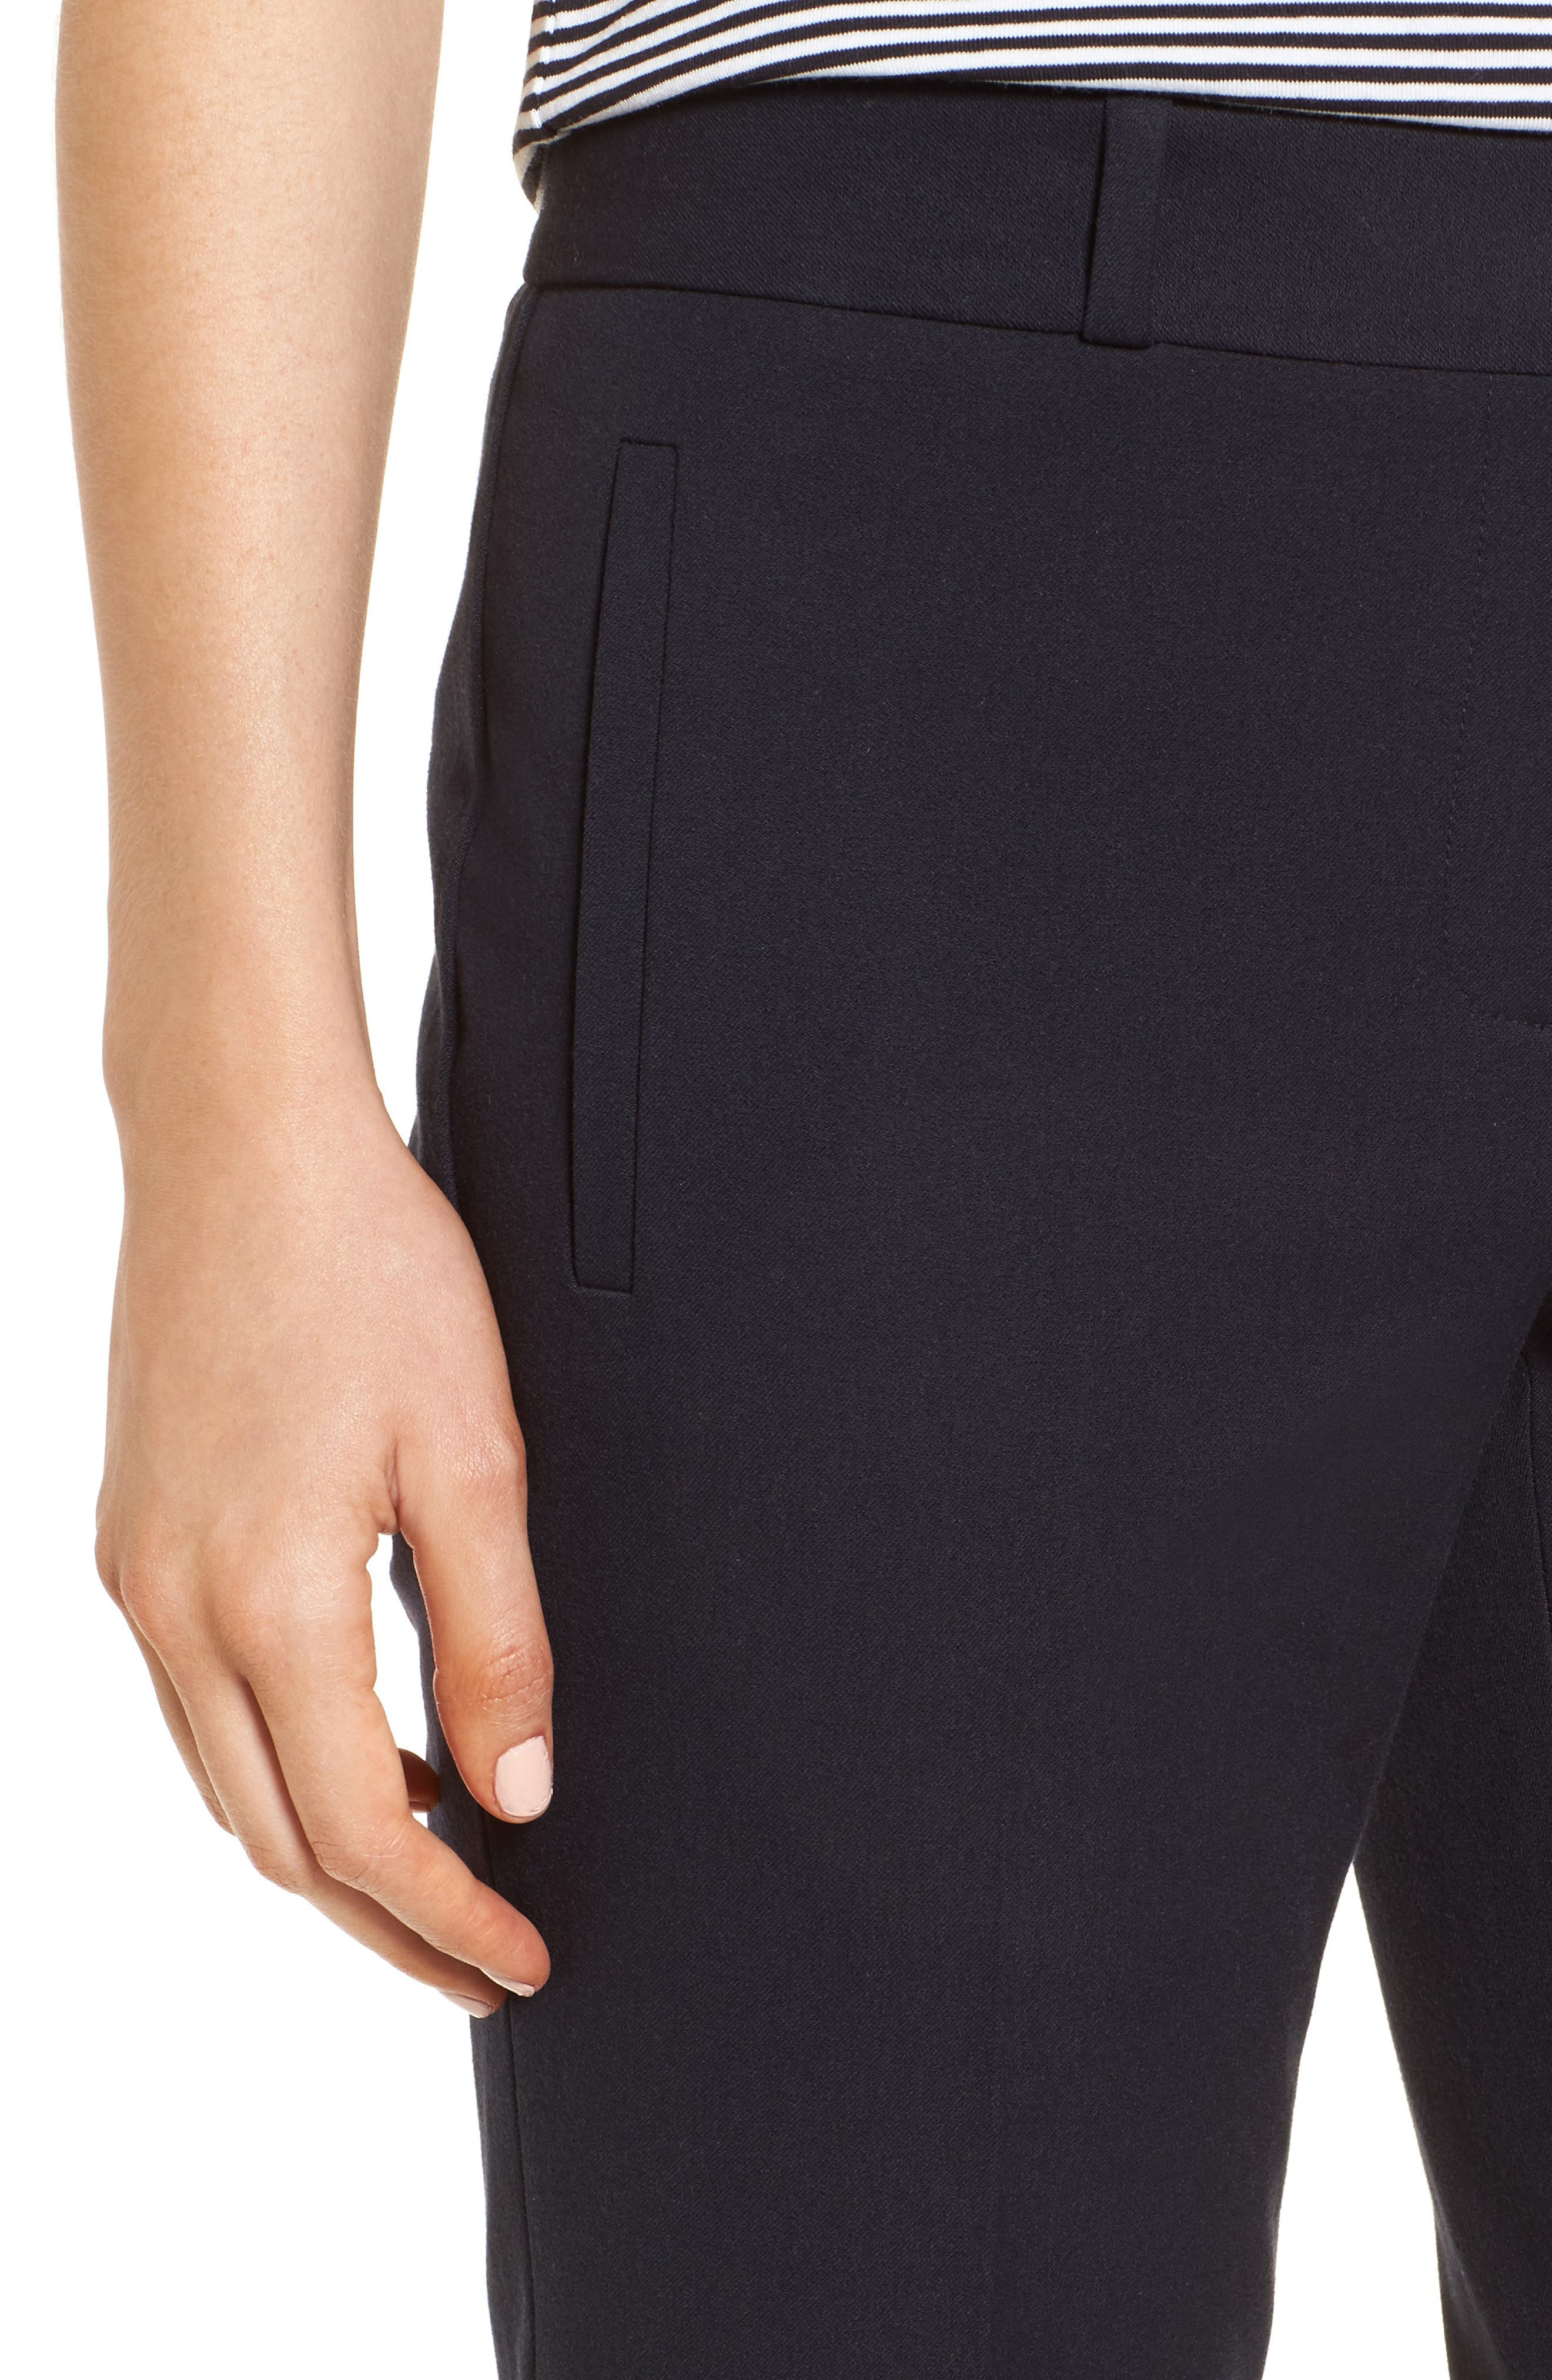 Welt Pocket Slim Leg Crop Pants,                             Alternate thumbnail 4, color,                             Navy Night